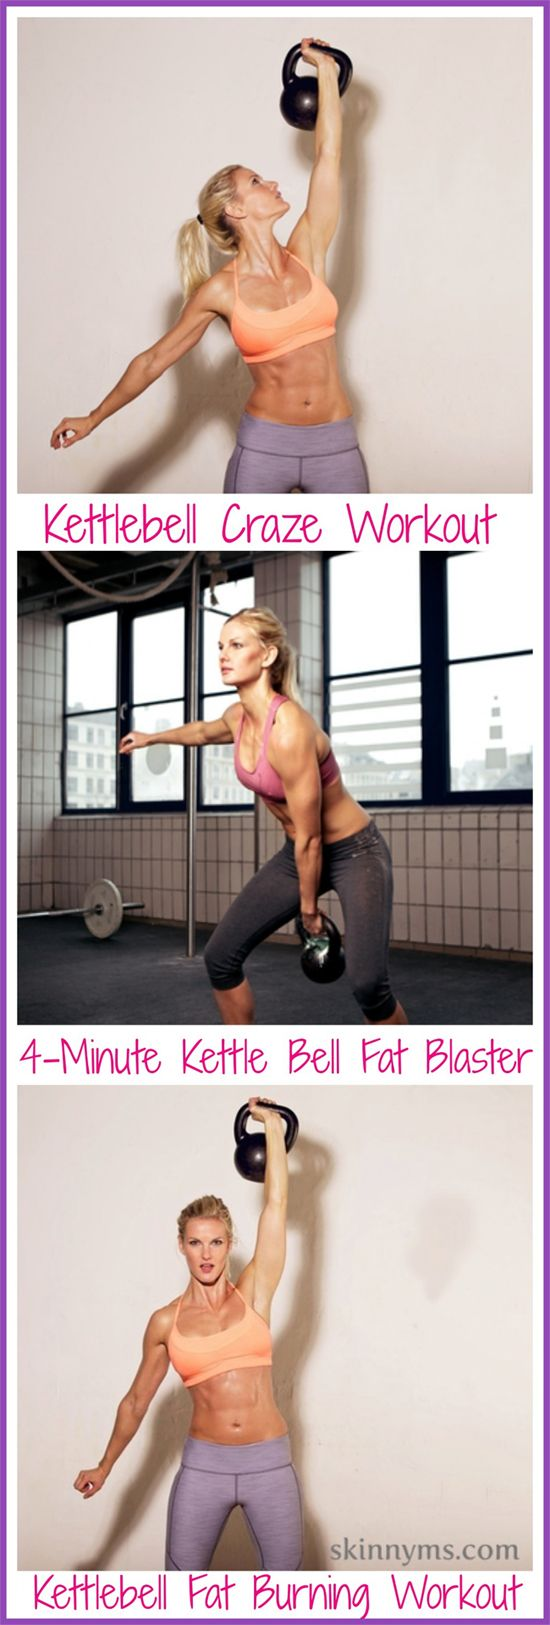 Top 3 Kettlebell Workout Routines - Fat Burning Workouts. Kettlebells are all the rage - and for a good reason! #kettlebell #workout #routines #fatloss #best #toning #skinnyms #fitness